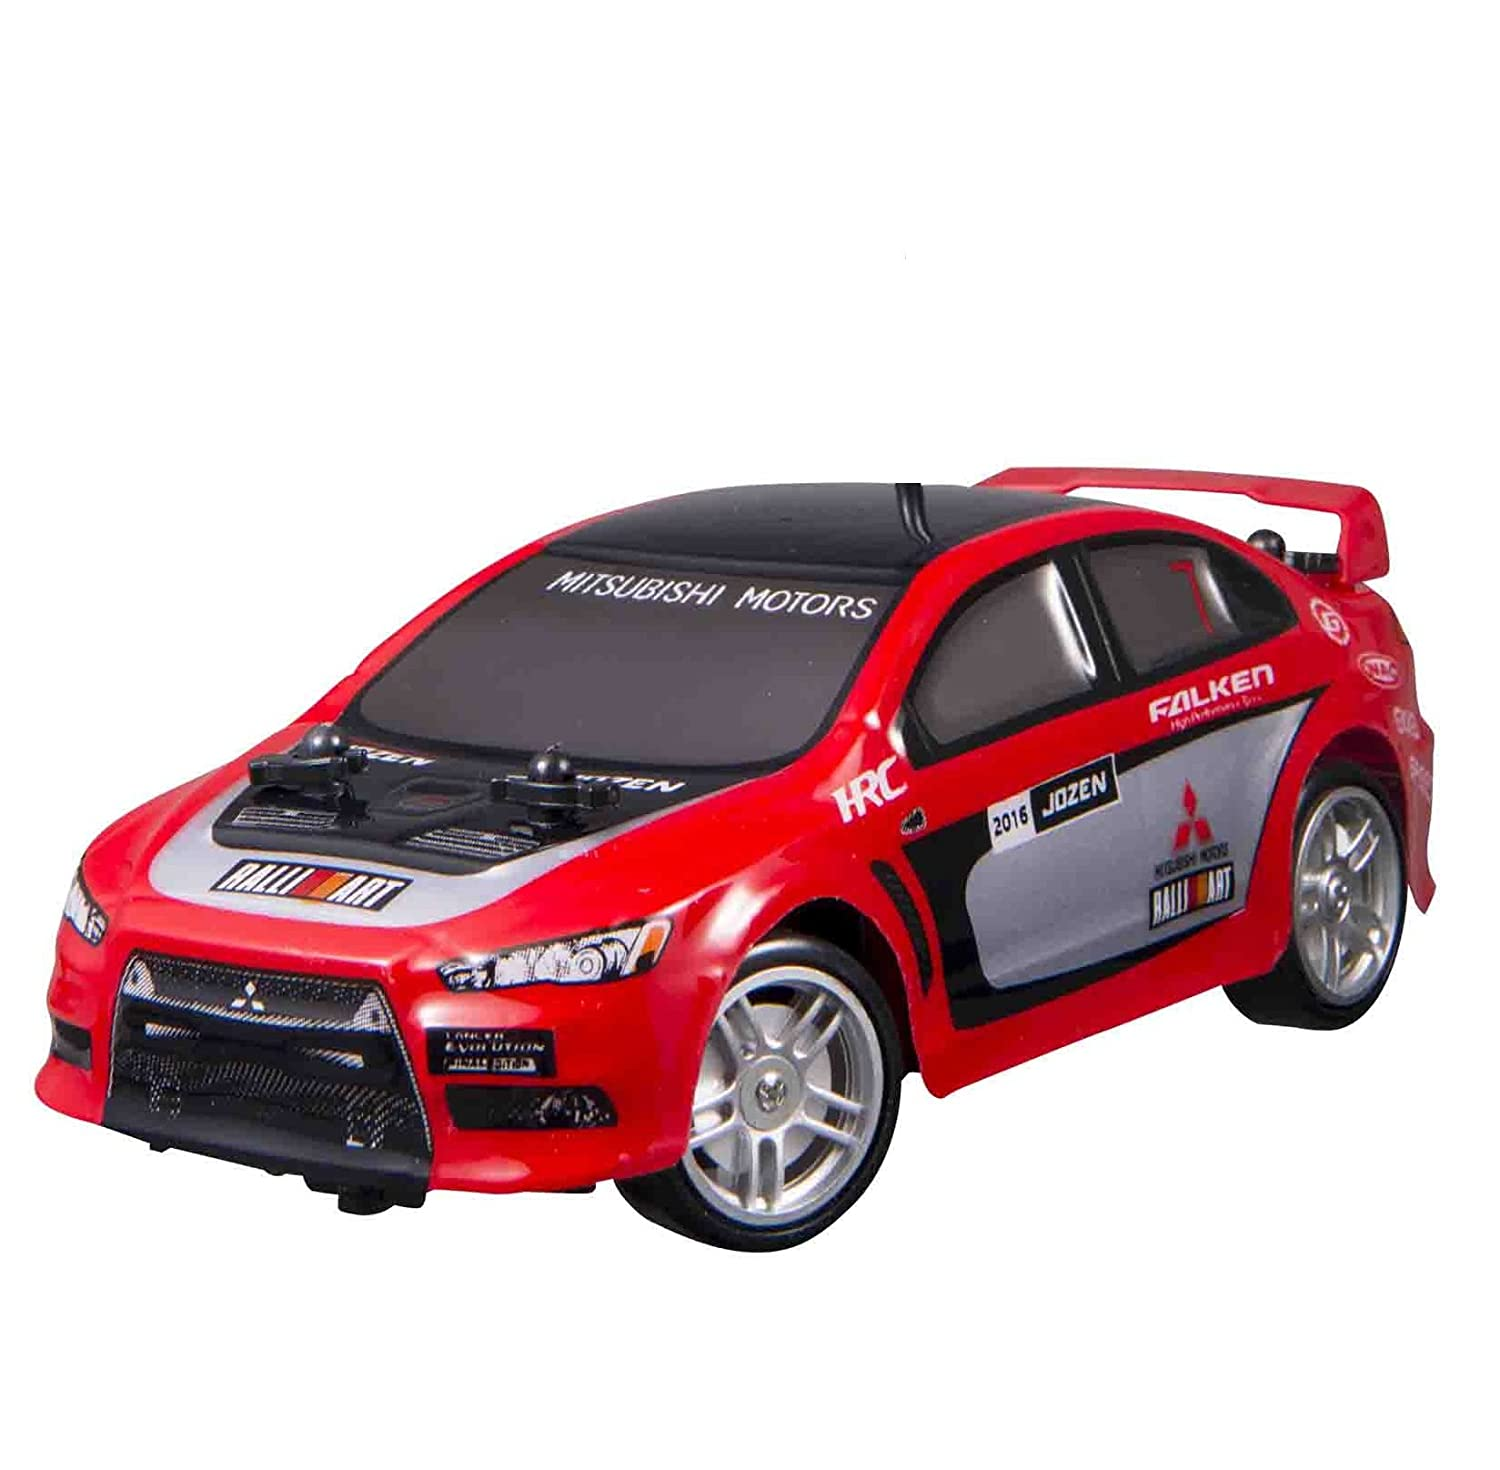 Jozen Jozen Dart Max 1./2.4. Drift Car RC Mitsubishi Lancer Evolution Rallye